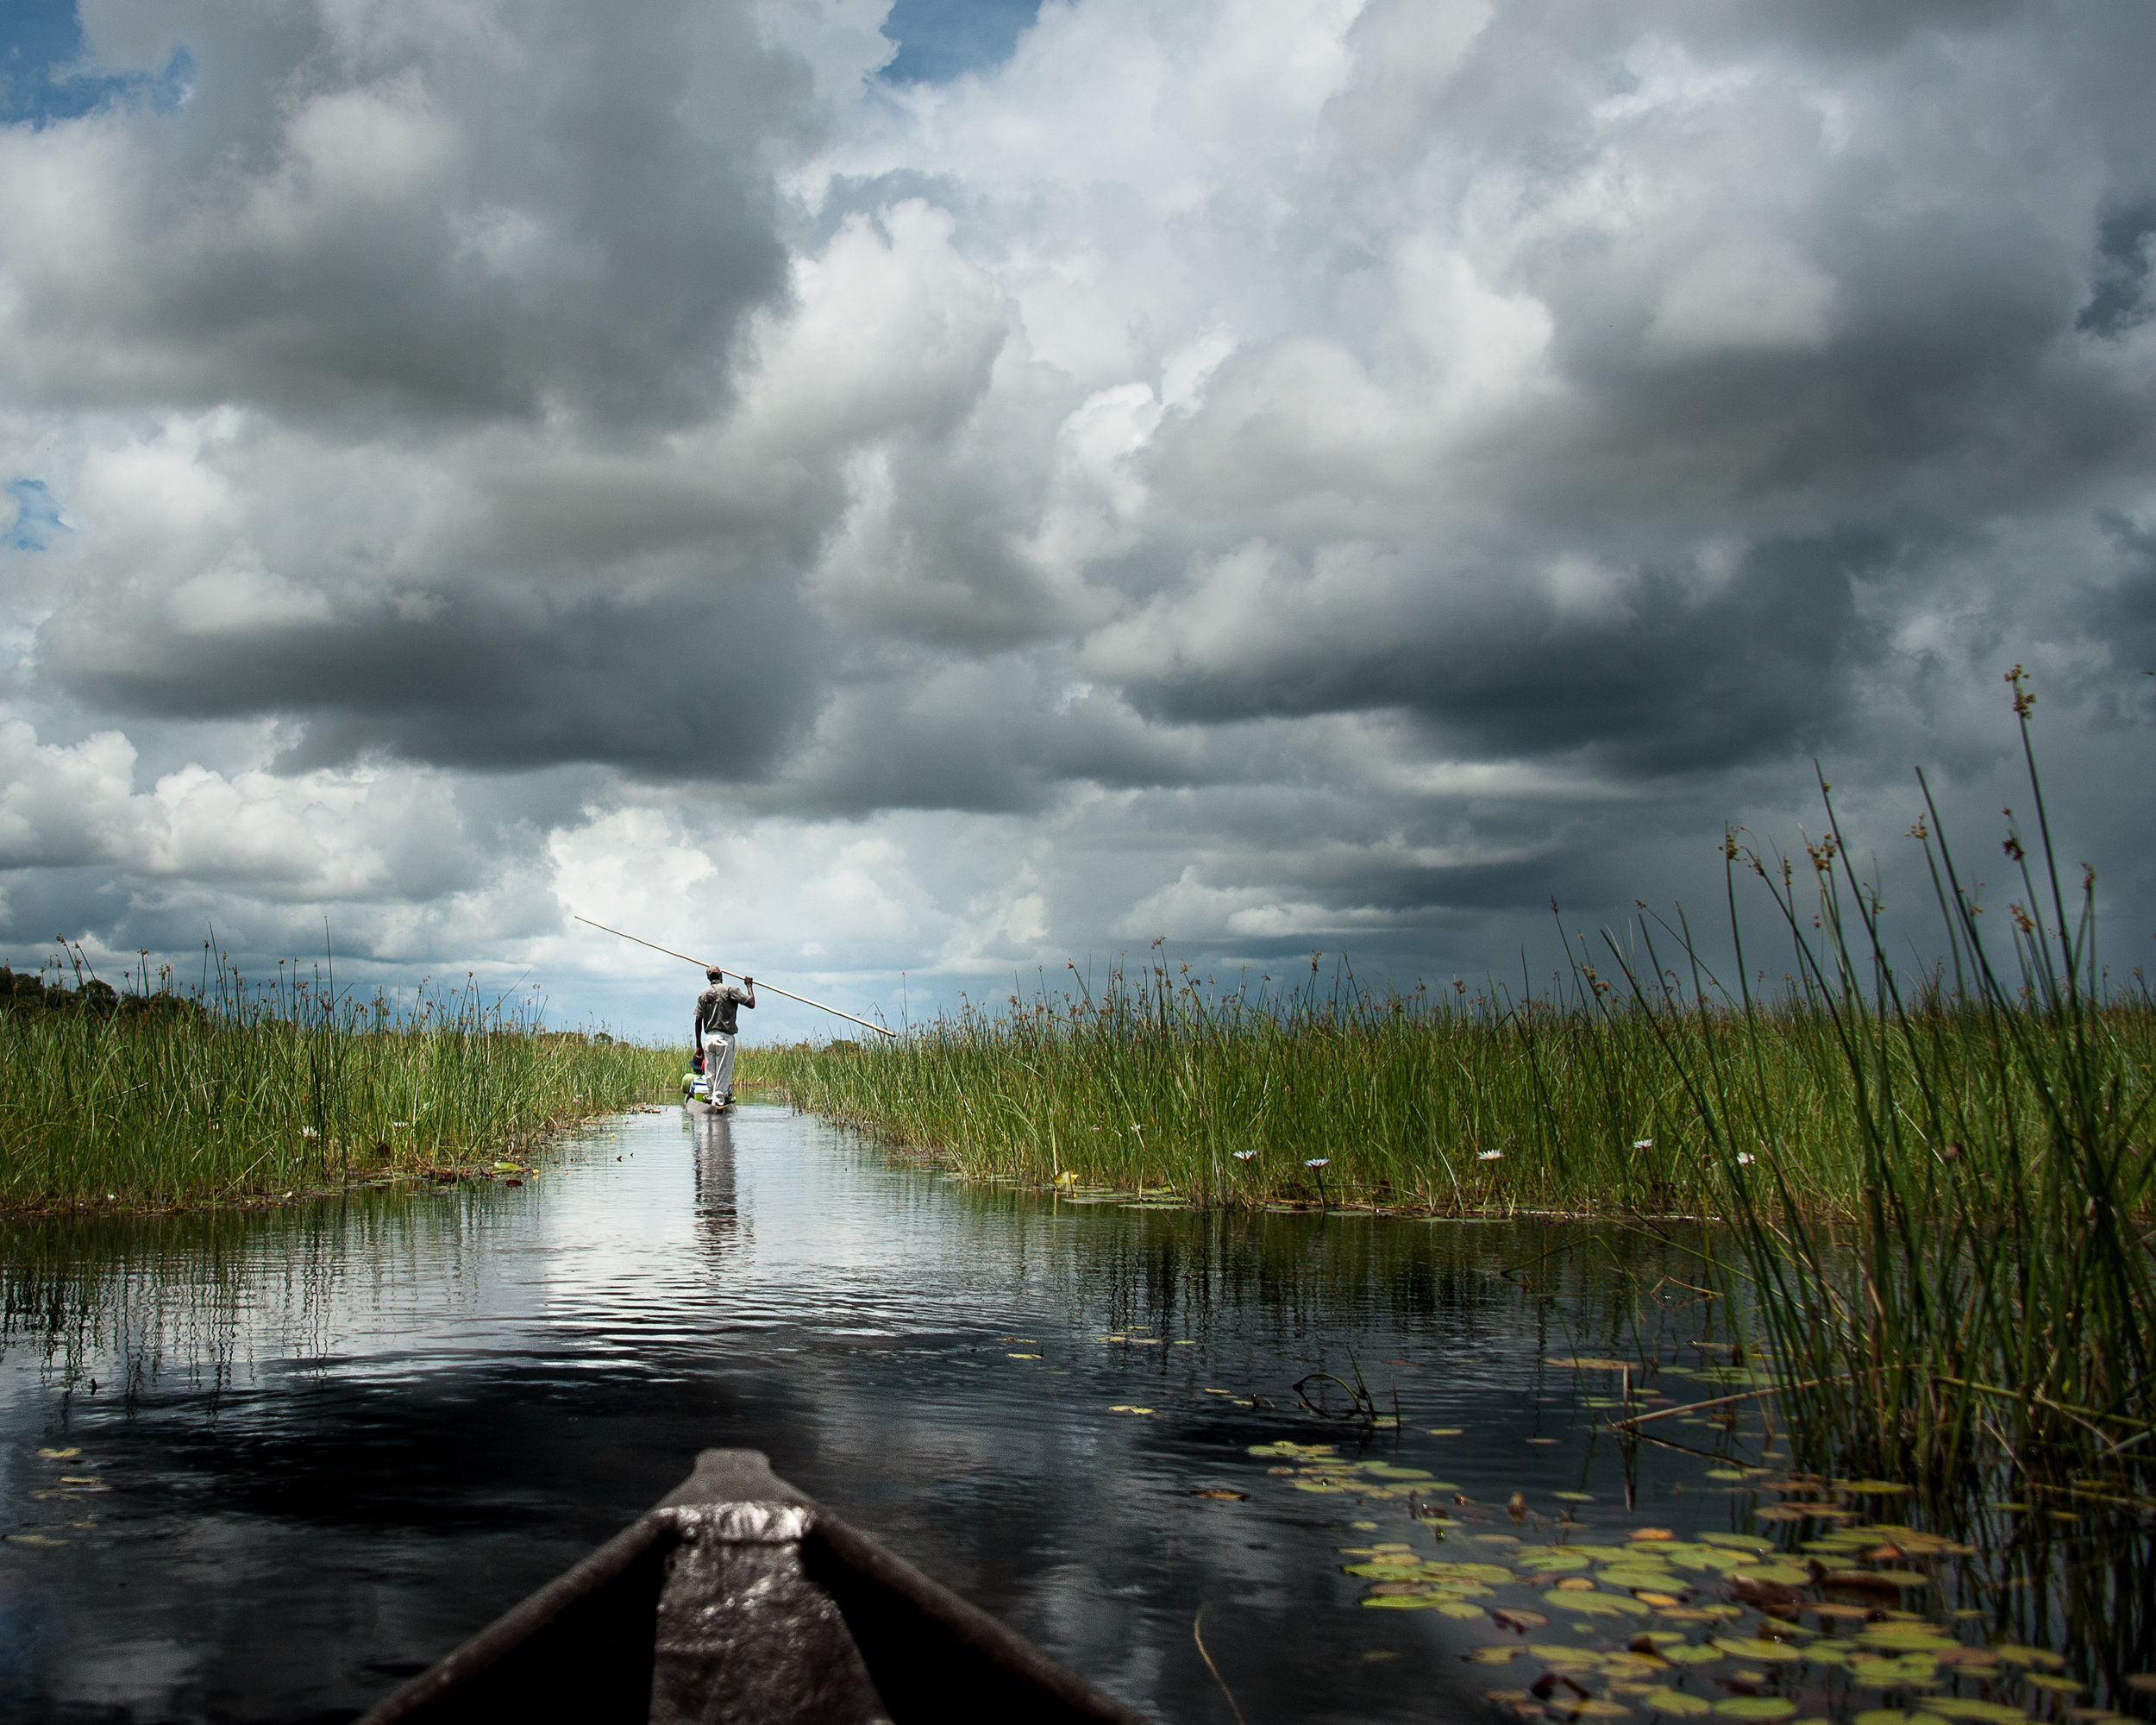 """Looking Forward at the Cross-way""  Photographed by Ron Foster              Okavango Delta, Botswana, Africa"